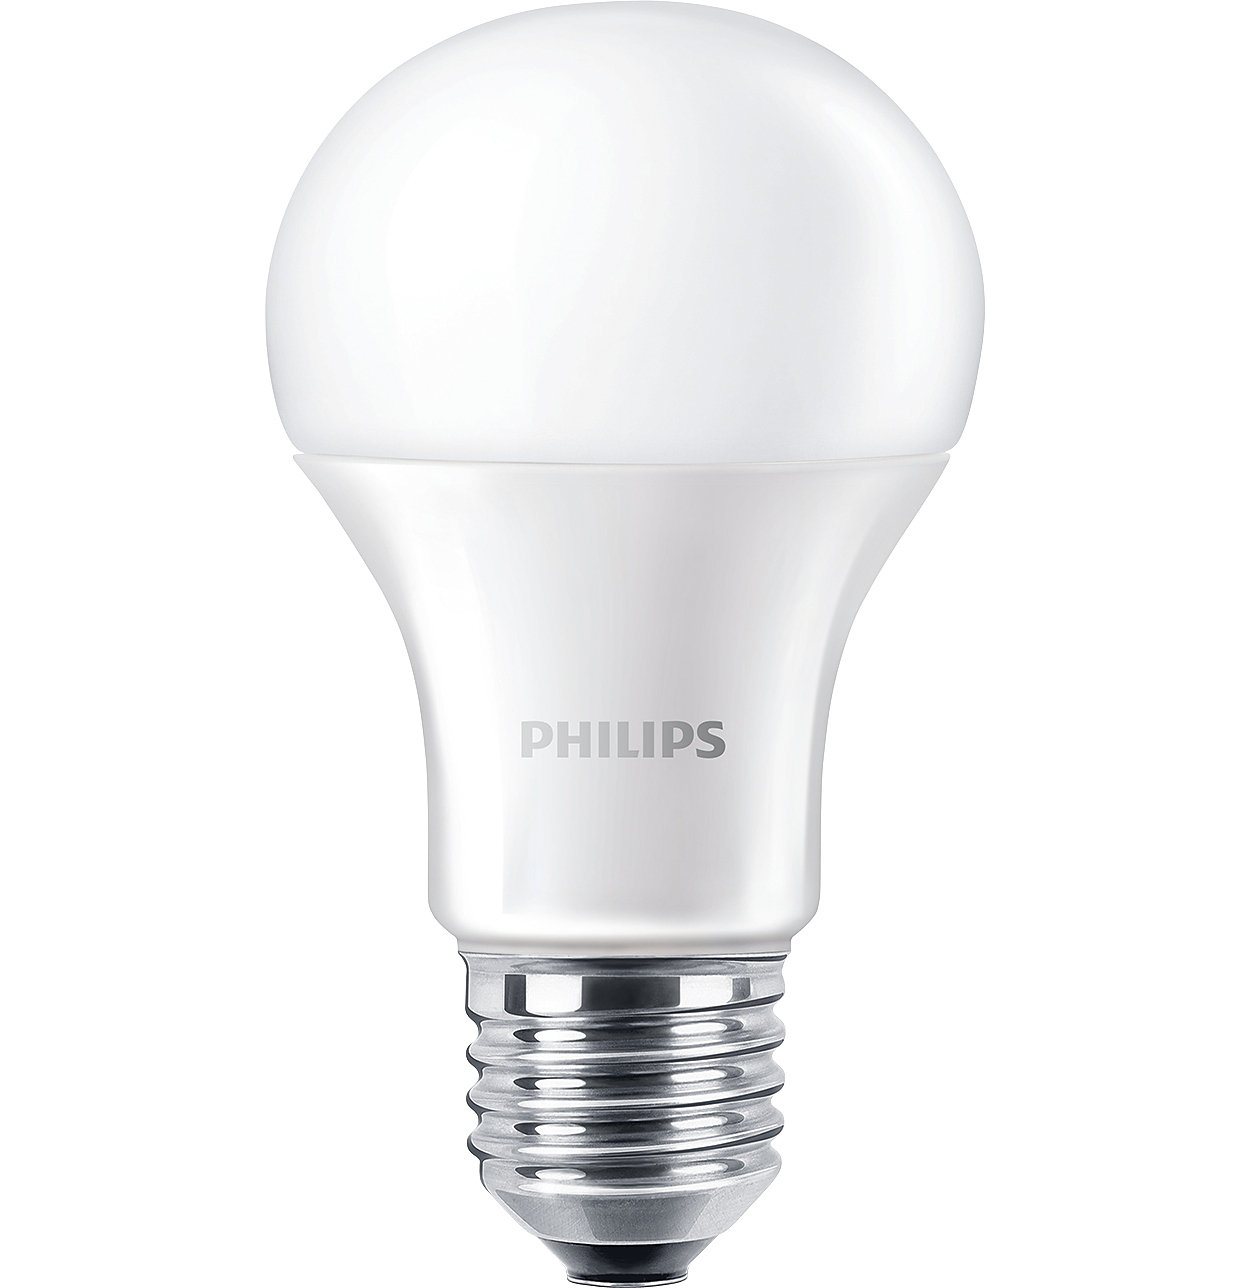 The affordable LEDbulb solution